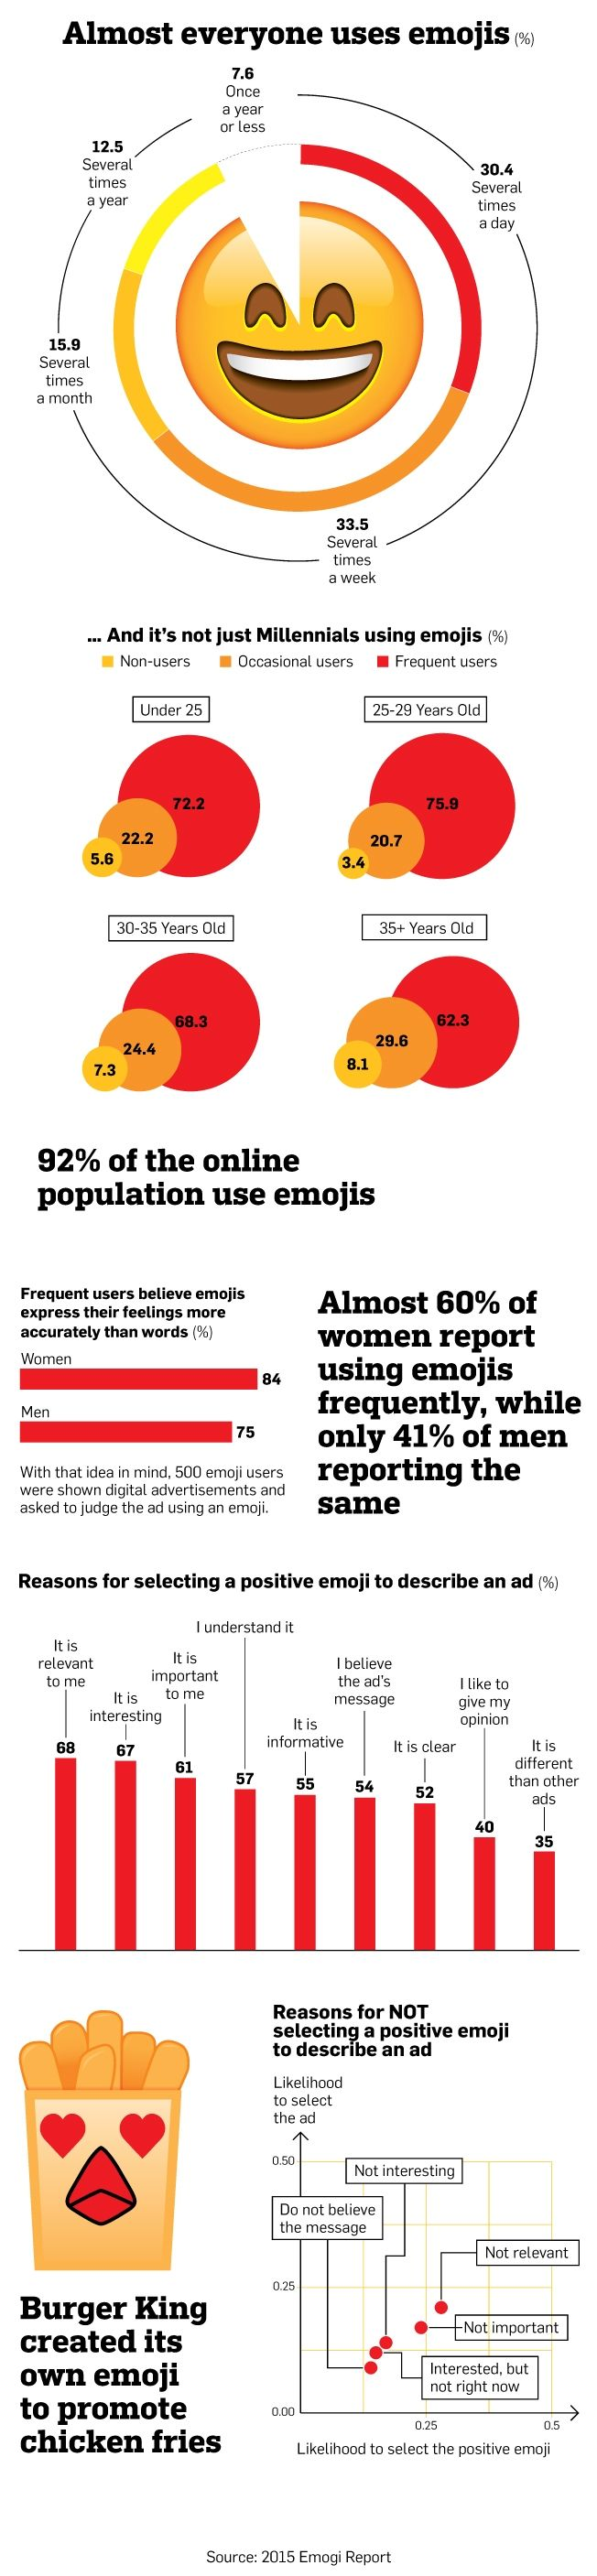 Infographic: Emojis Are Becoming a Preferred Communication Tool Across Demographics | Adweek